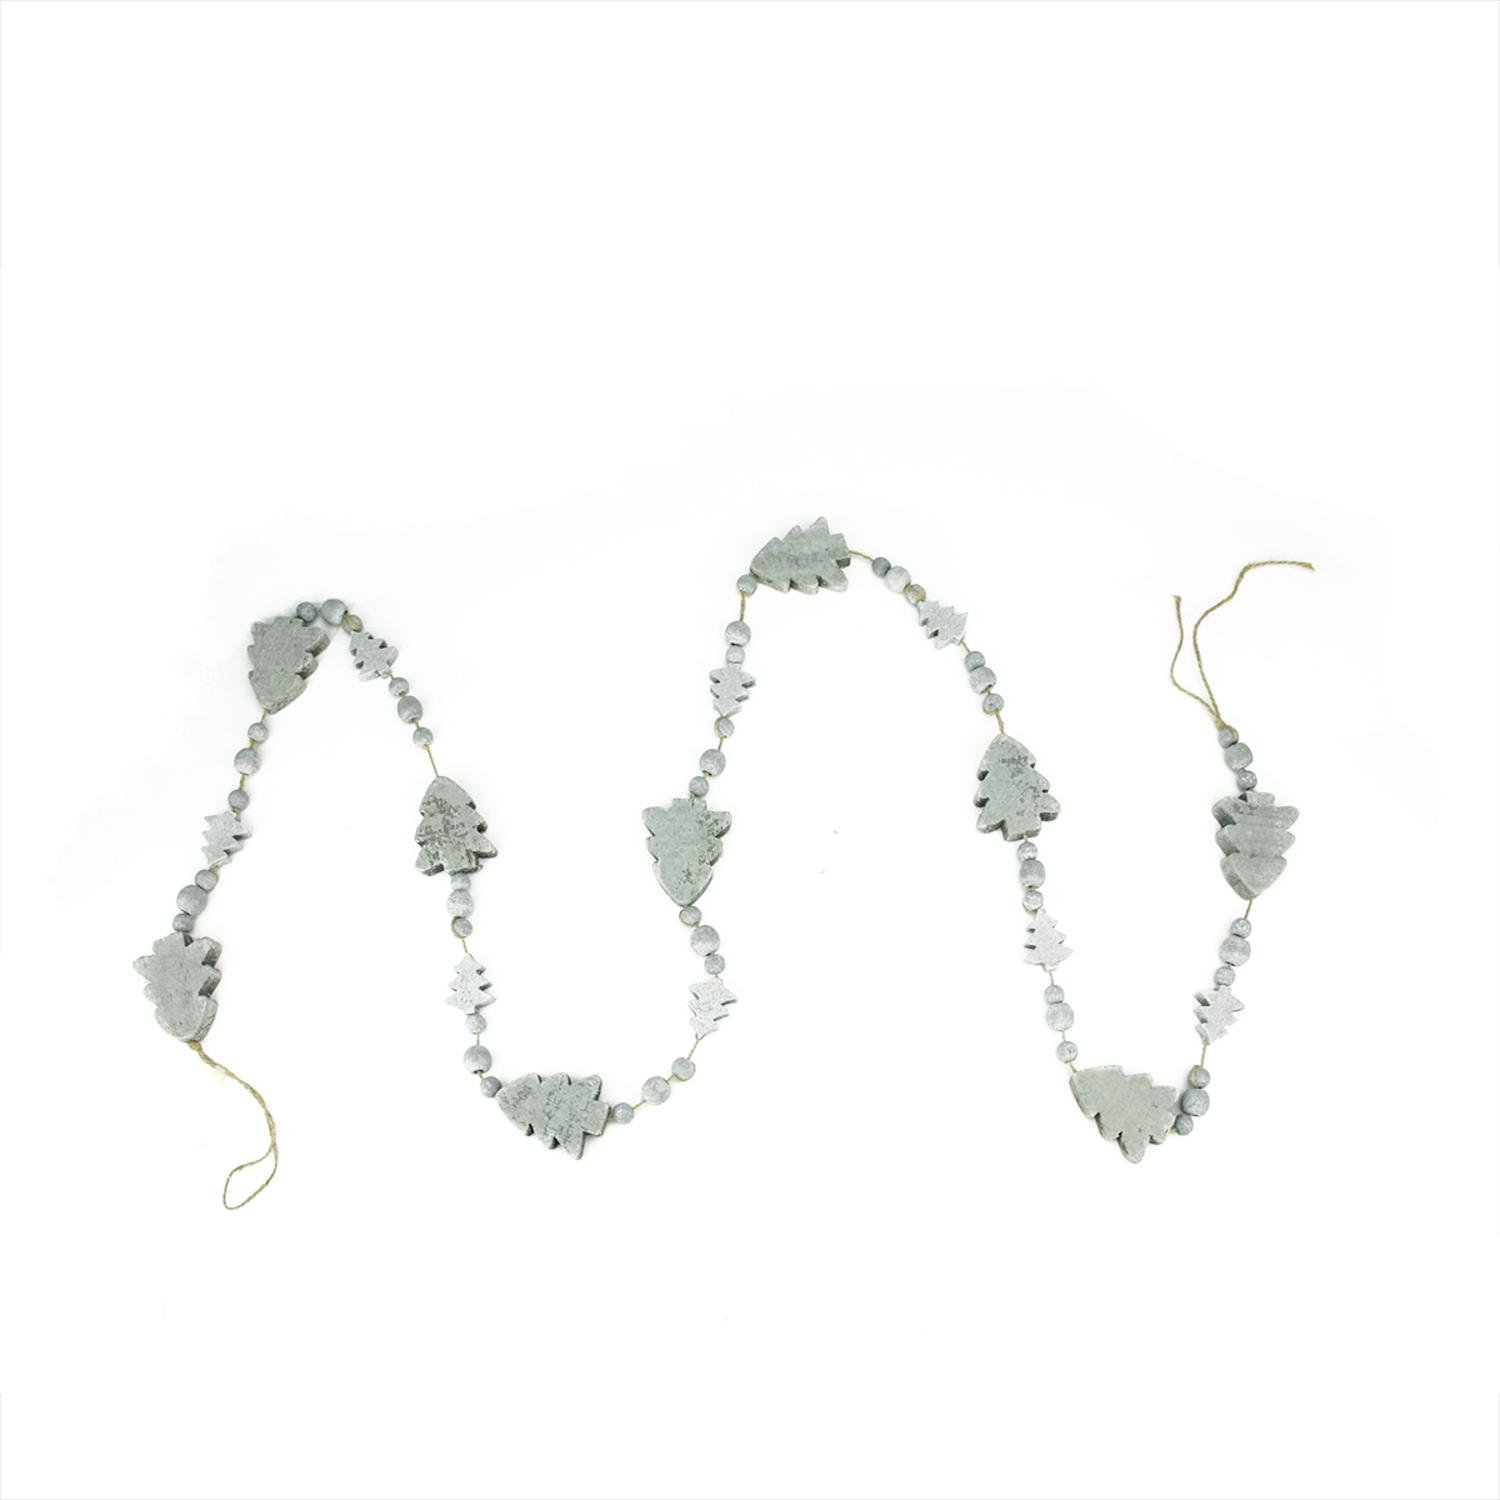 6' Alpine Chic Gray Distressed Wood Bead and Christmas Tree Holiday Garland - Unlit